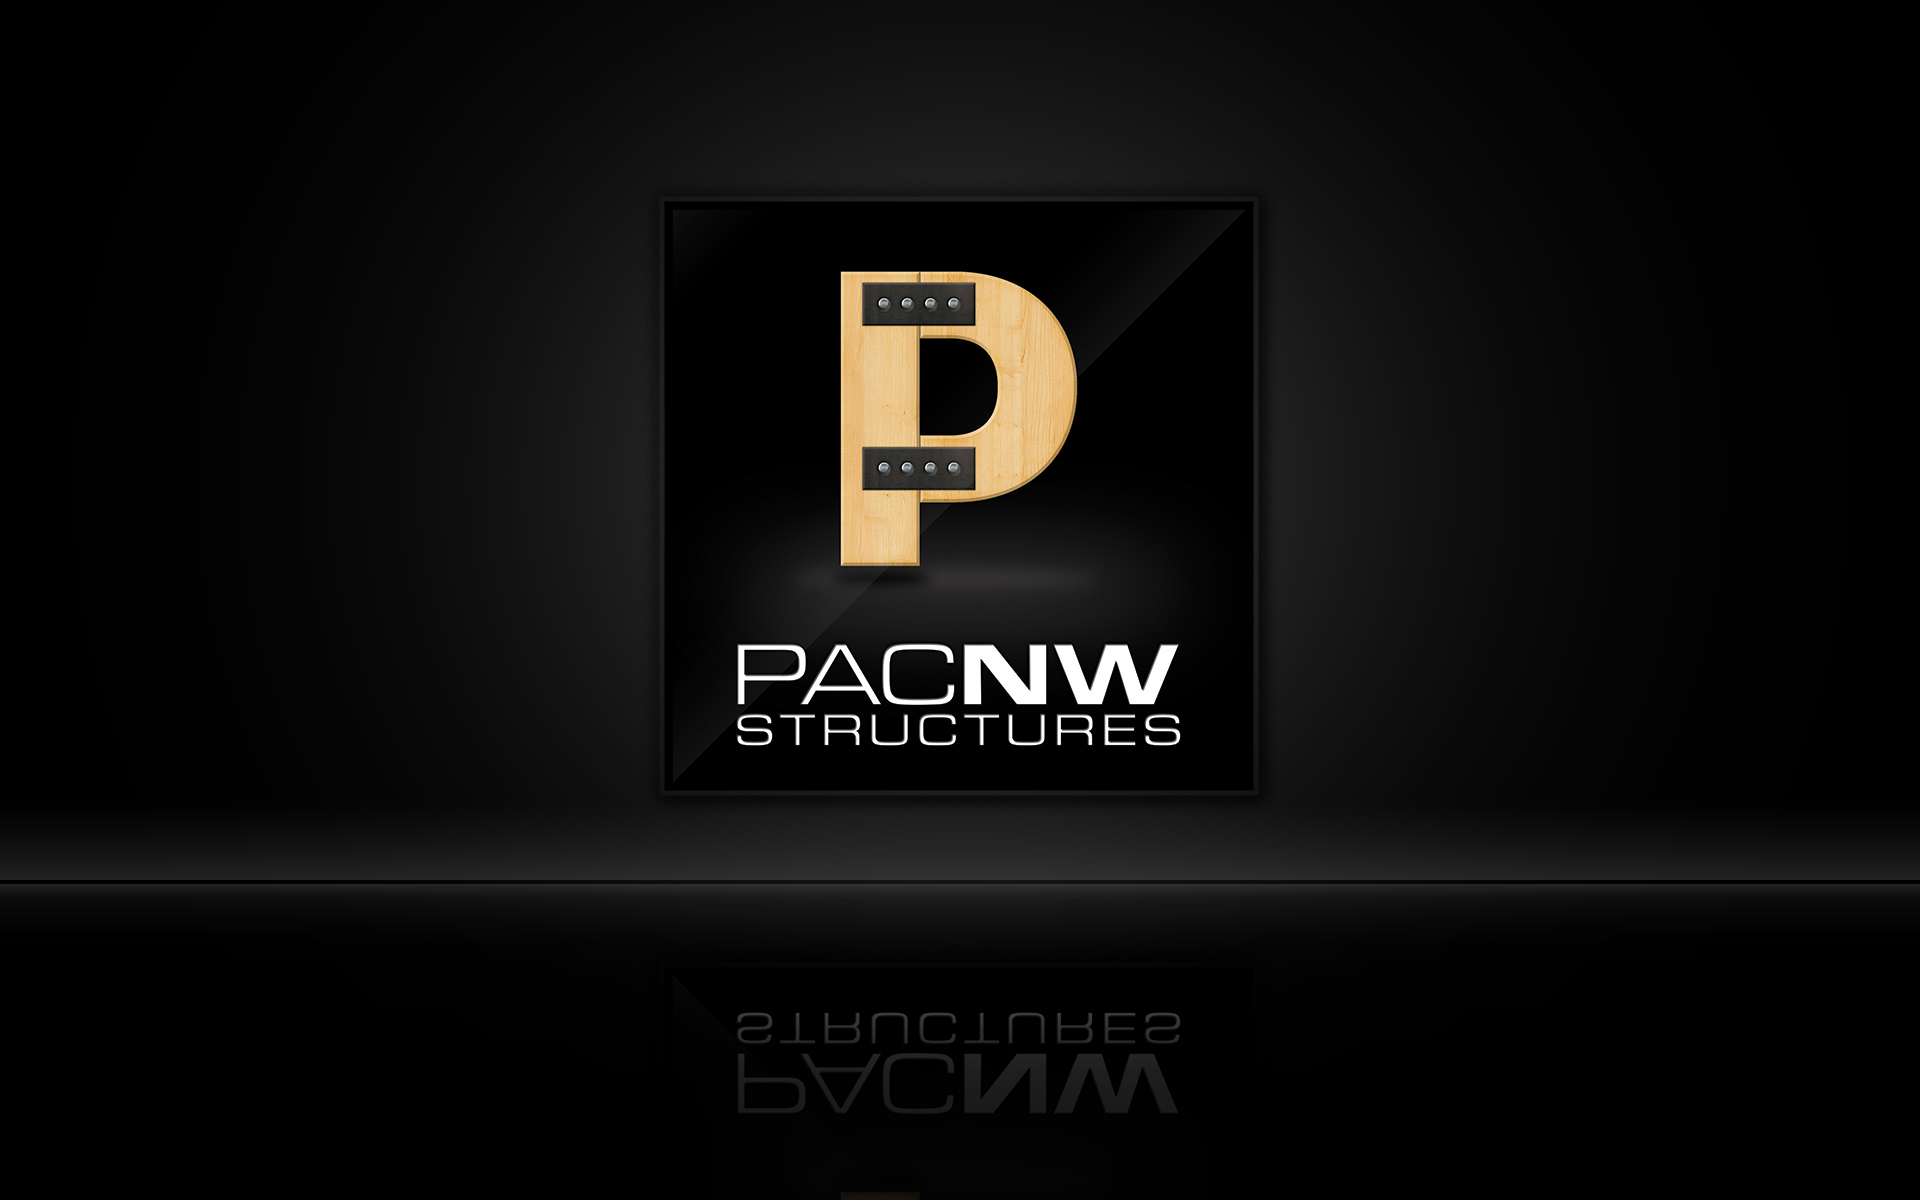 PAC NW Structures  by Graham Hnedak Brand G Creative 10 May 2016.jpg